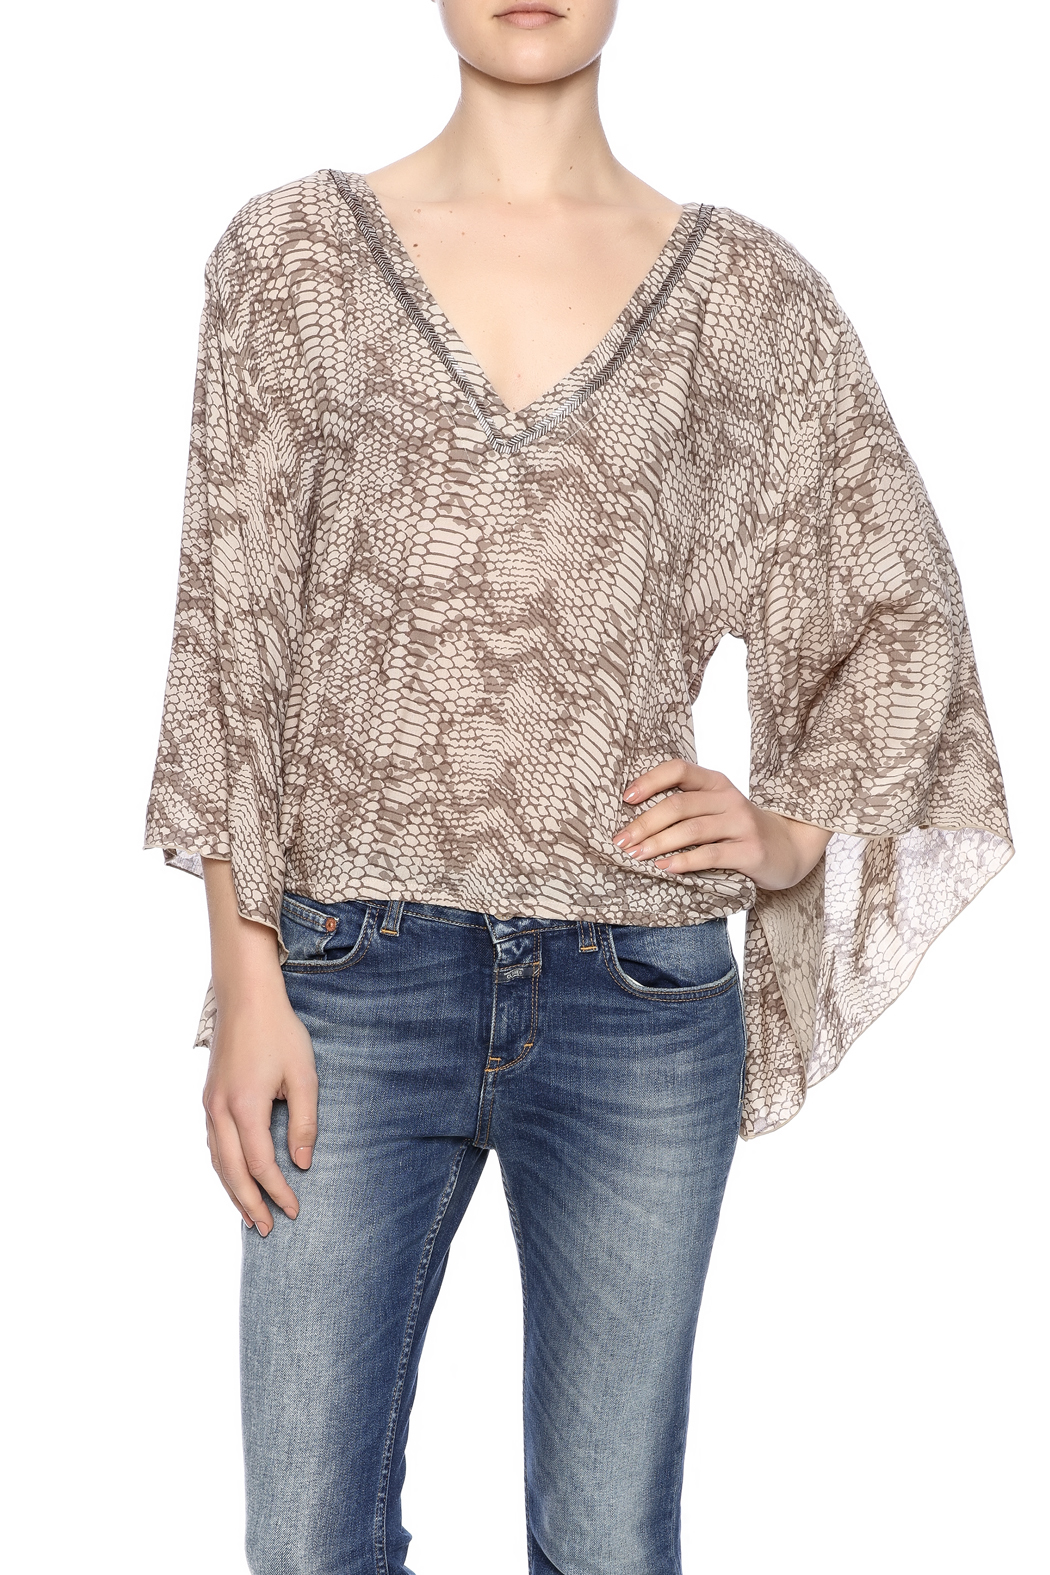 Khush Clothing Balisani Top - Front Cropped Image